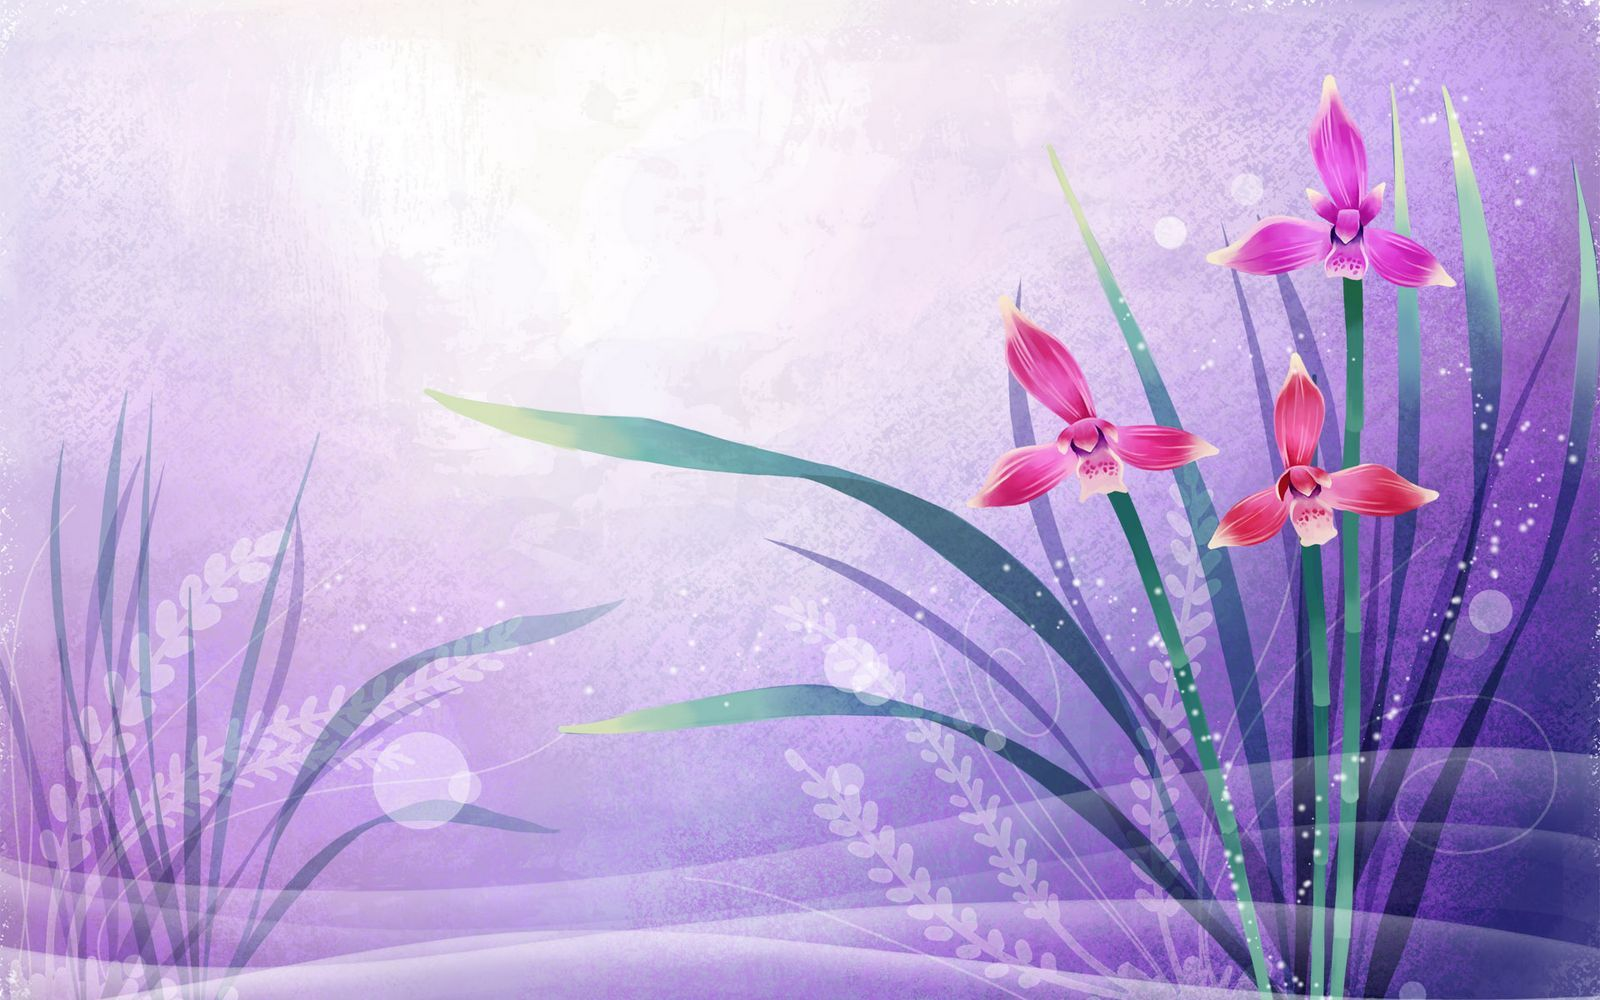 Abstract Design Flower Wallpaper: Beautifully Illustrated Vector Flower Backgrounds